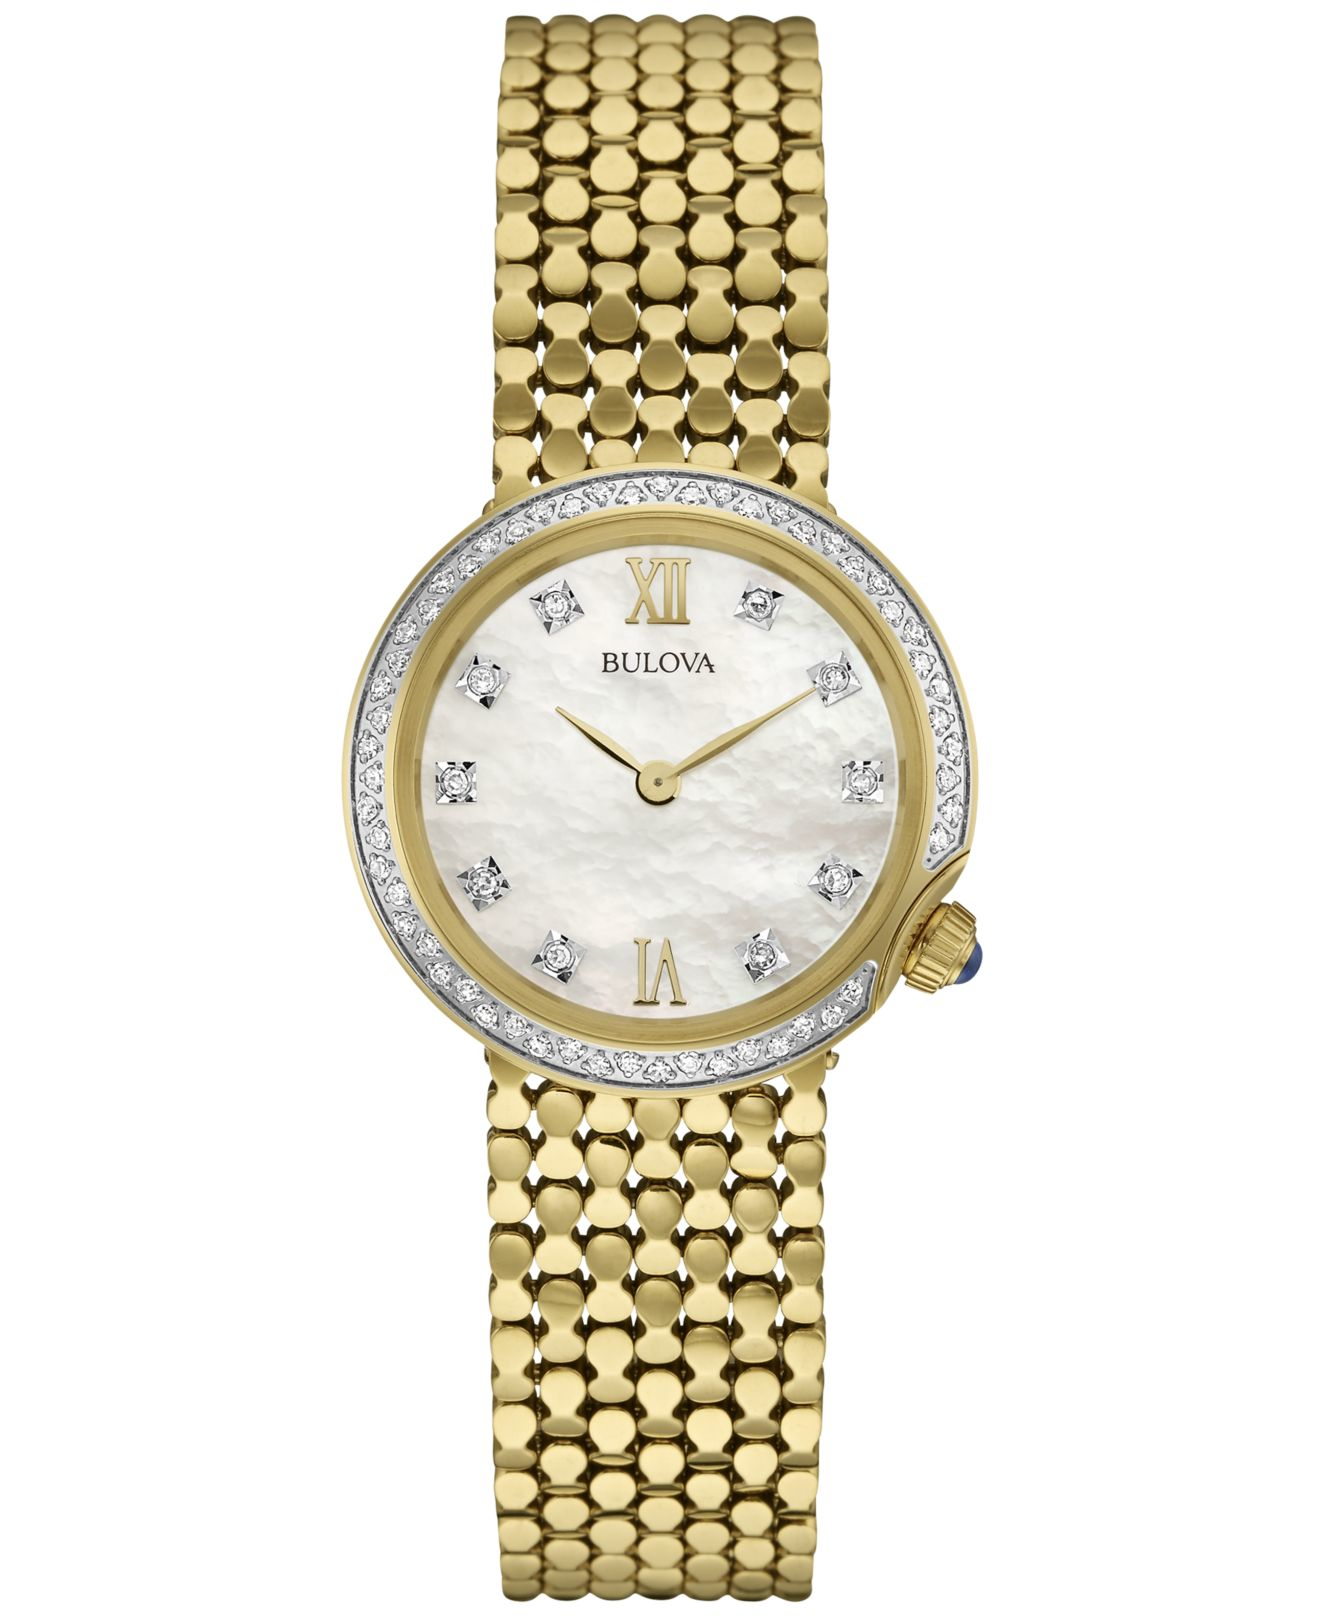 Bulova Women S Diamond 1 6 Ct T W Gold Tone Stainless